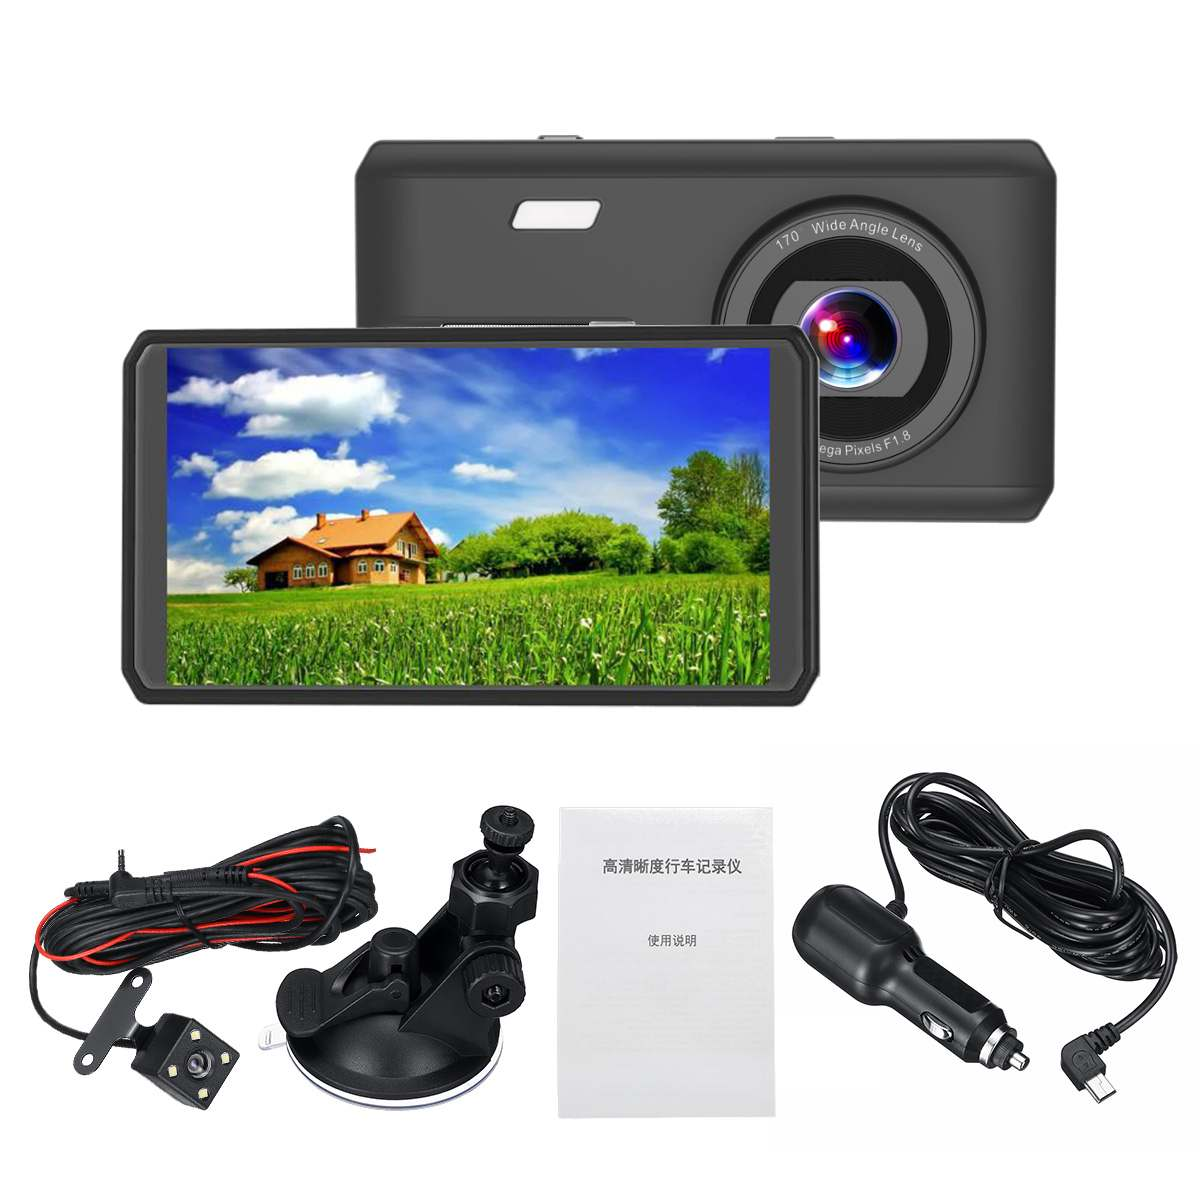 KROAK 1080P 4,5 zoll FHD Auto DVR Schwarz Dashboard Nachtsicht Kamera Video berühren screen Recorder Loop Recording Mini dash